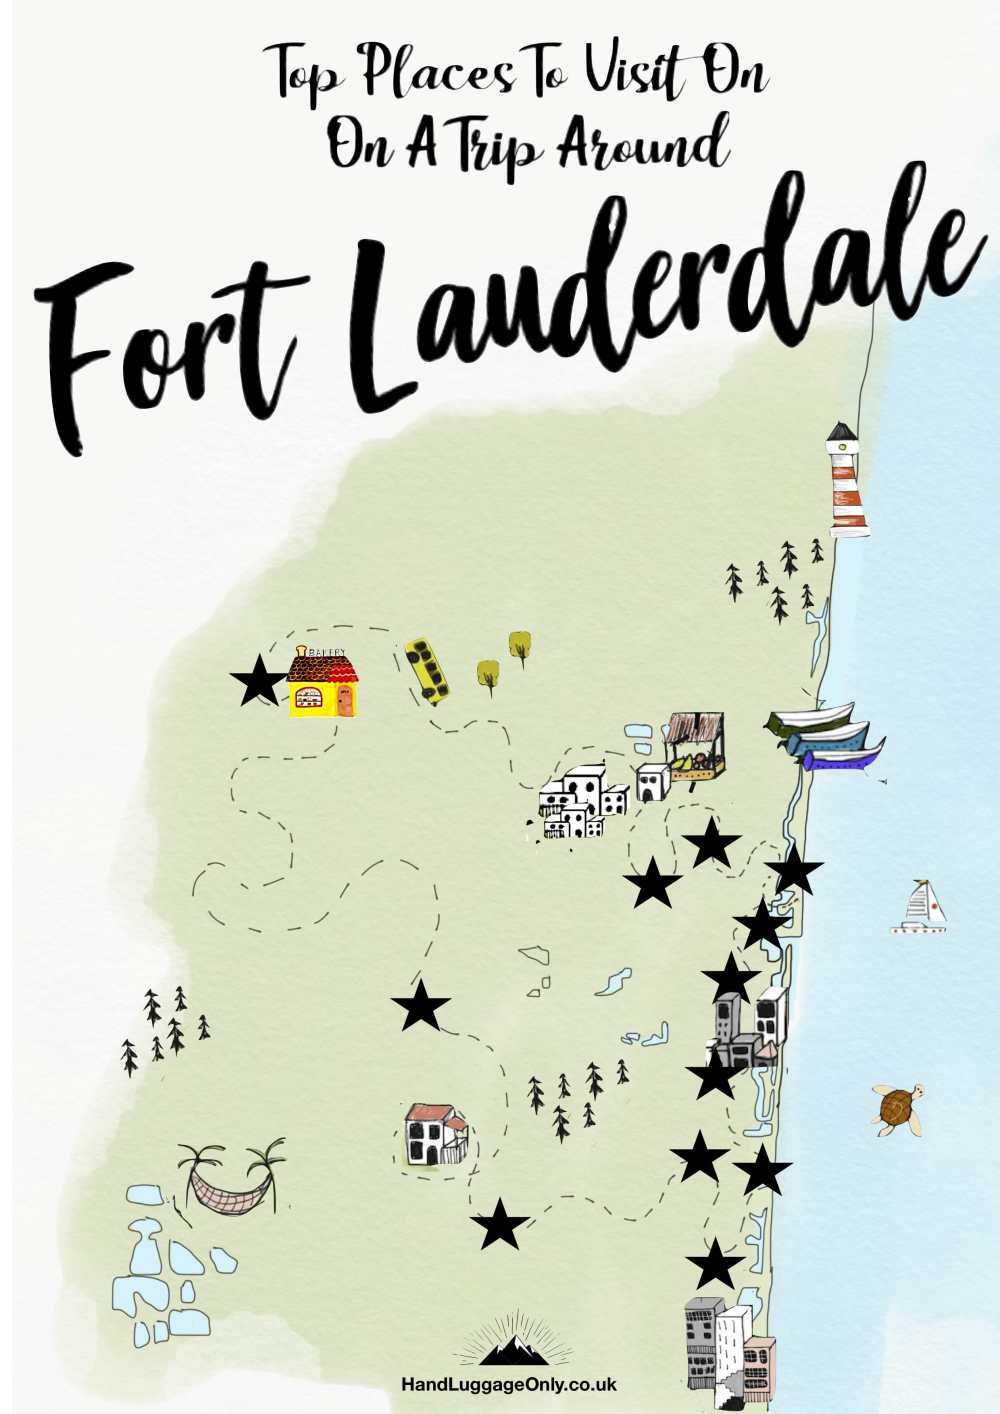 Best Things To Do In Fort Lauderdale (11)